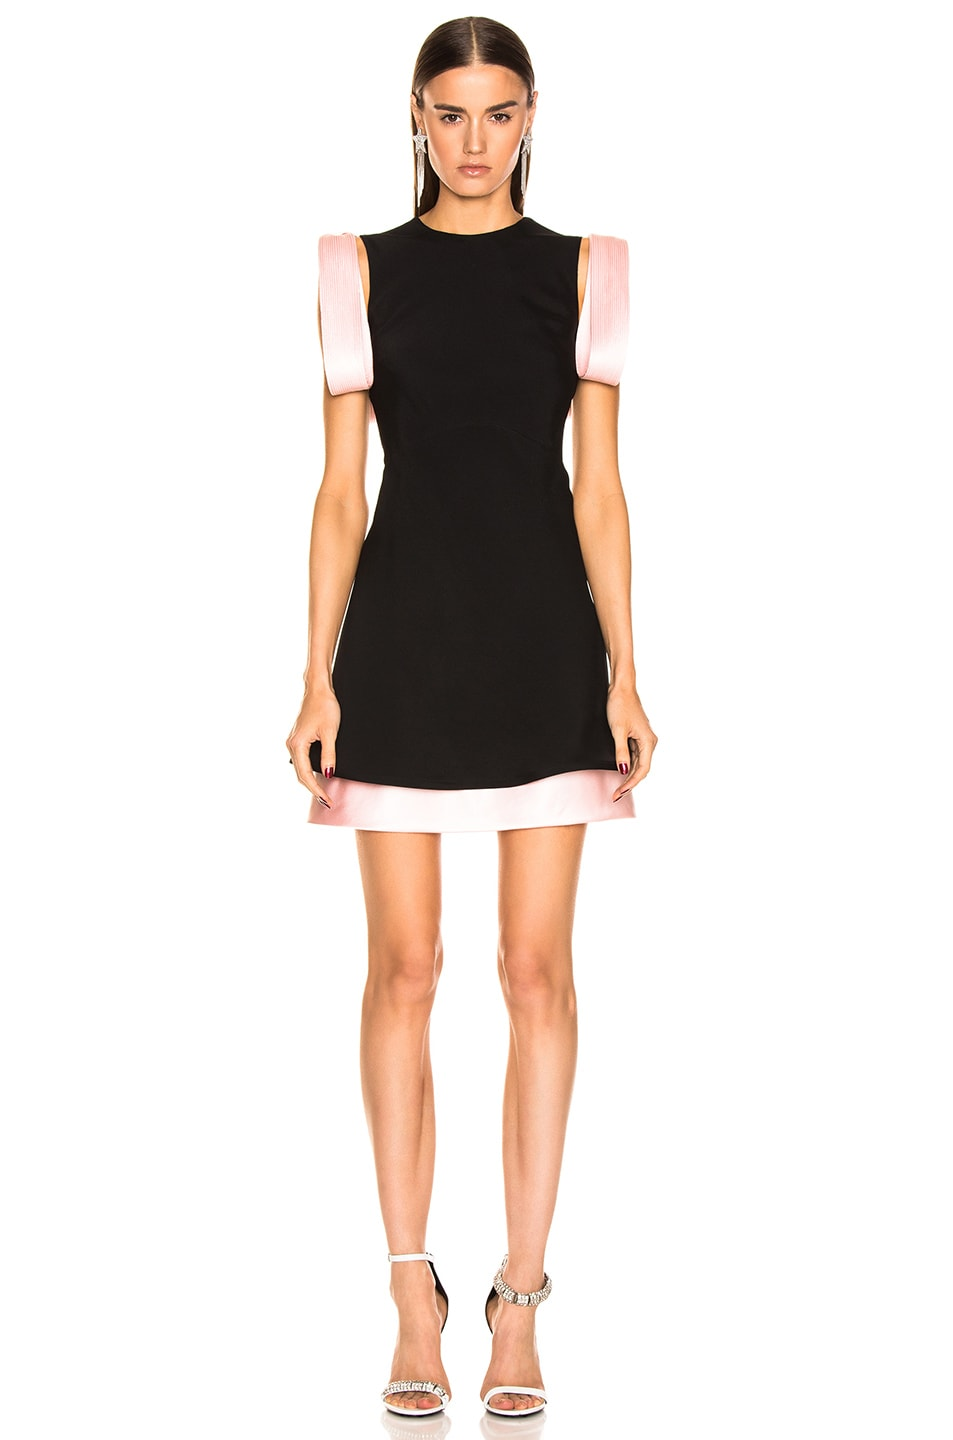 Image 1 of CALVIN KLEIN 205W39NYC Two Tone Dress in Black Pink